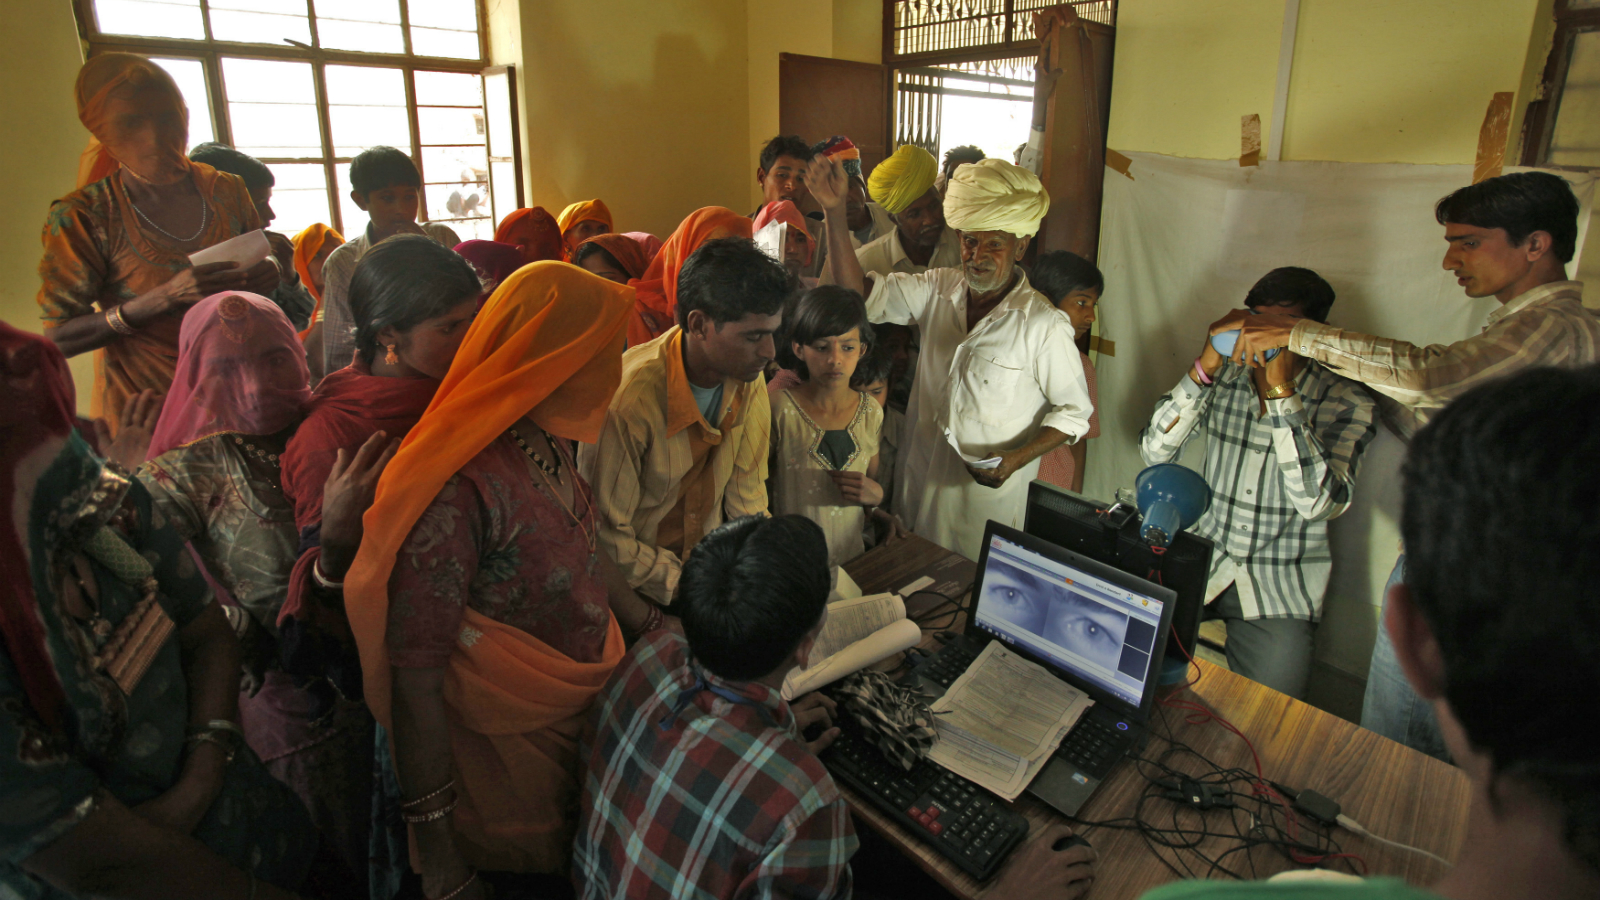 Villagers crowd inside an enrolment centre for the Unique Identification (UID) database system at Merta district in the desert Indian state of Rajasthan February 21, 2013. In a more ambitious version of programmes that have slashed poverty in Brazil and Mexico, the Indian government has begun to use the UID database, known as Aadhaar, to make direct cash transfers to the poor, in an attempt to cut out frauds who siphon billions of dollars from welfare schemes. Picture taken February 21, 2013.